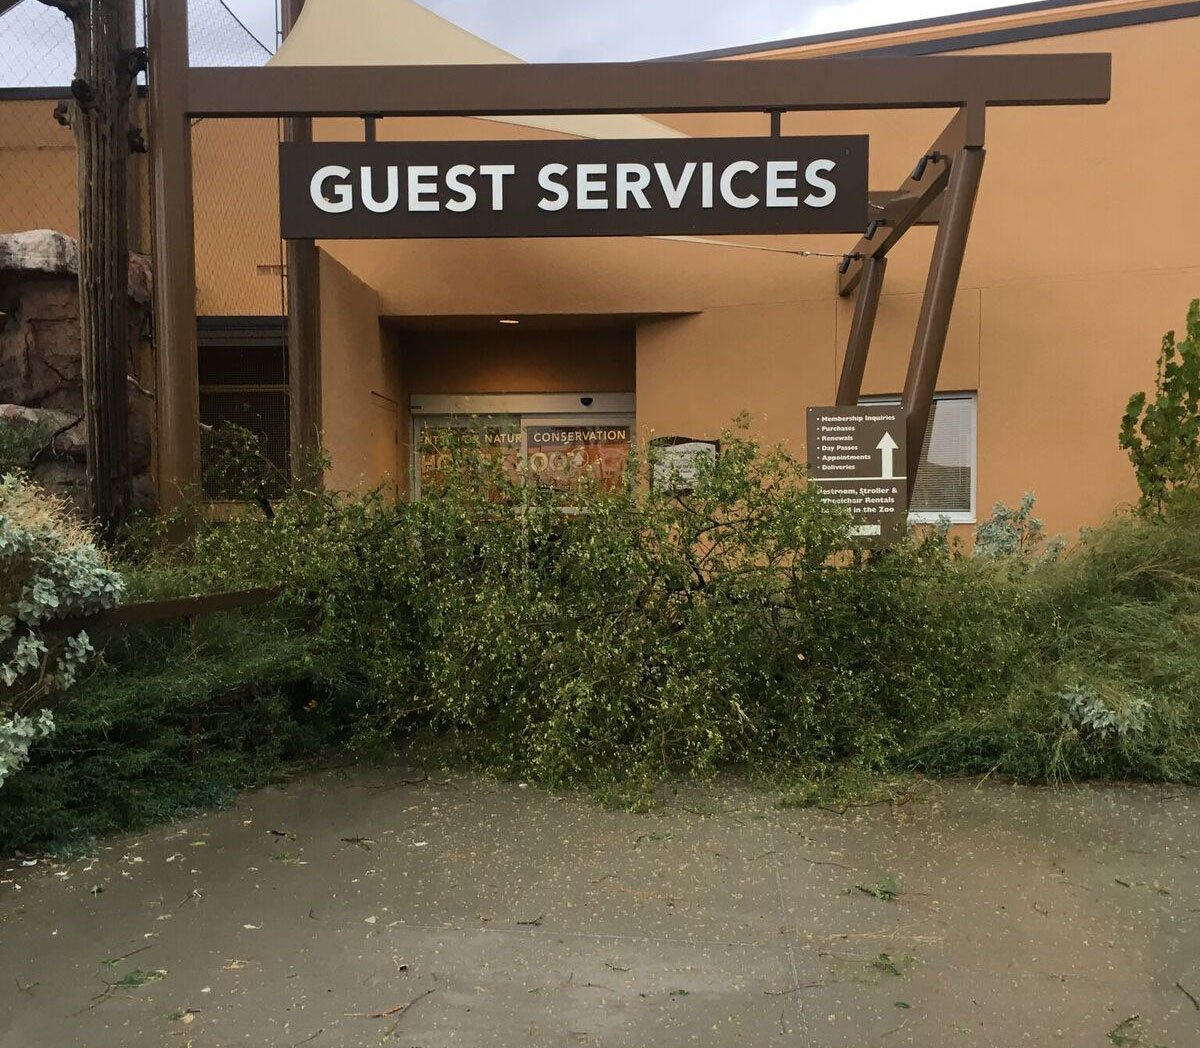 Phoenix Zoo to reopen after monsoon storm damage  Arizonas Family